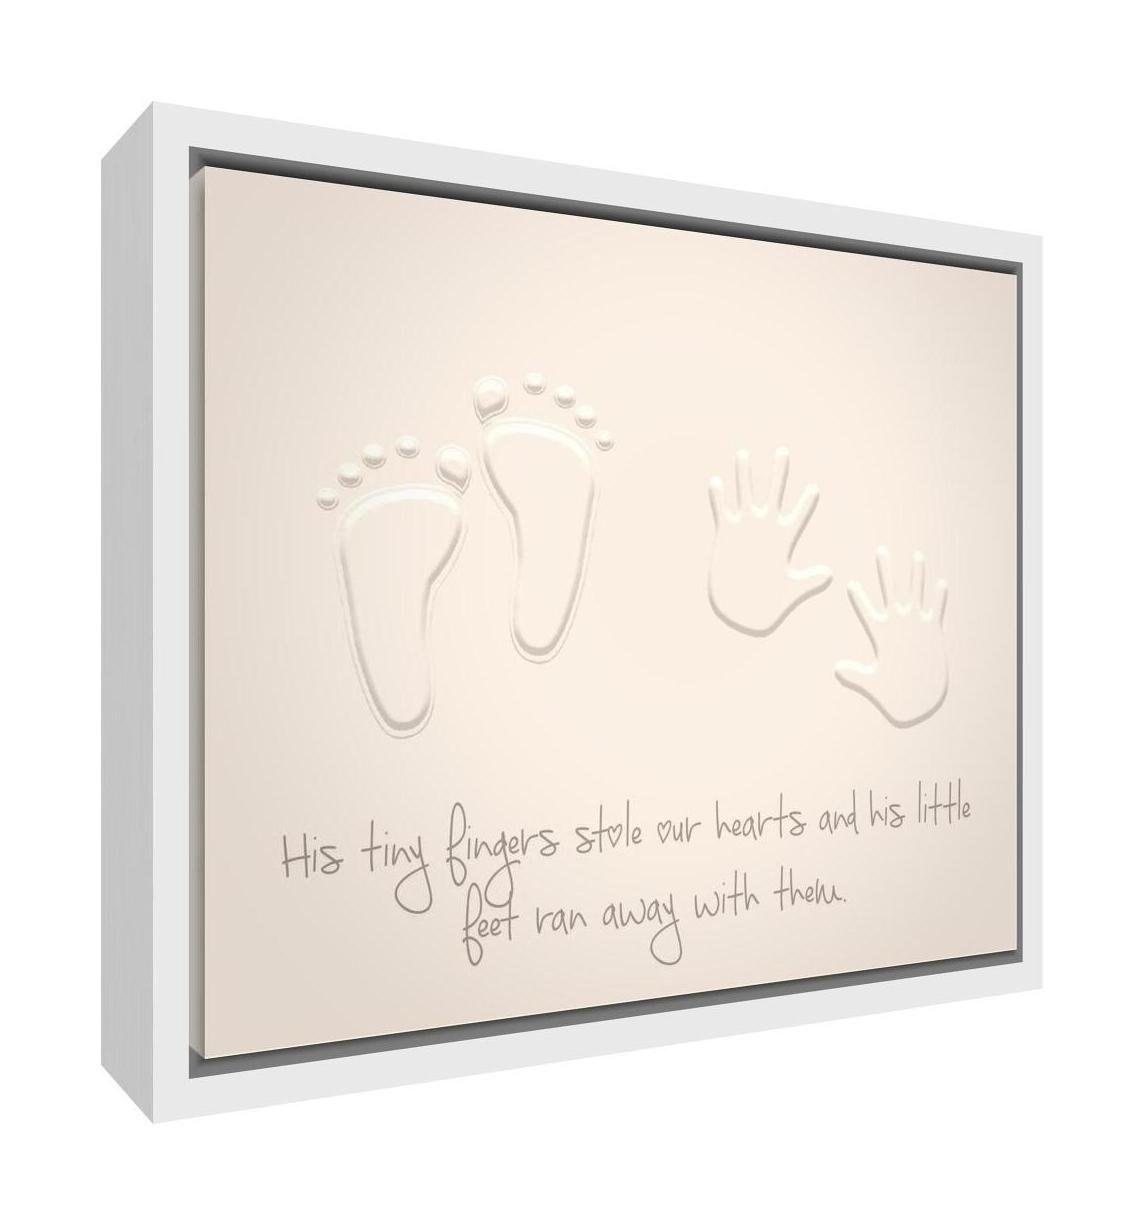 Feel Good Art Framed Box Canvas with Solid White Wooden Frame in Modern and Stylish Design (24 x 34 x 3 cm, Small, Soft Grey, Be Kind/Be Beautiful/Be You) Little Helper Ltd BOYHEARTFEET128-FCWHT-19